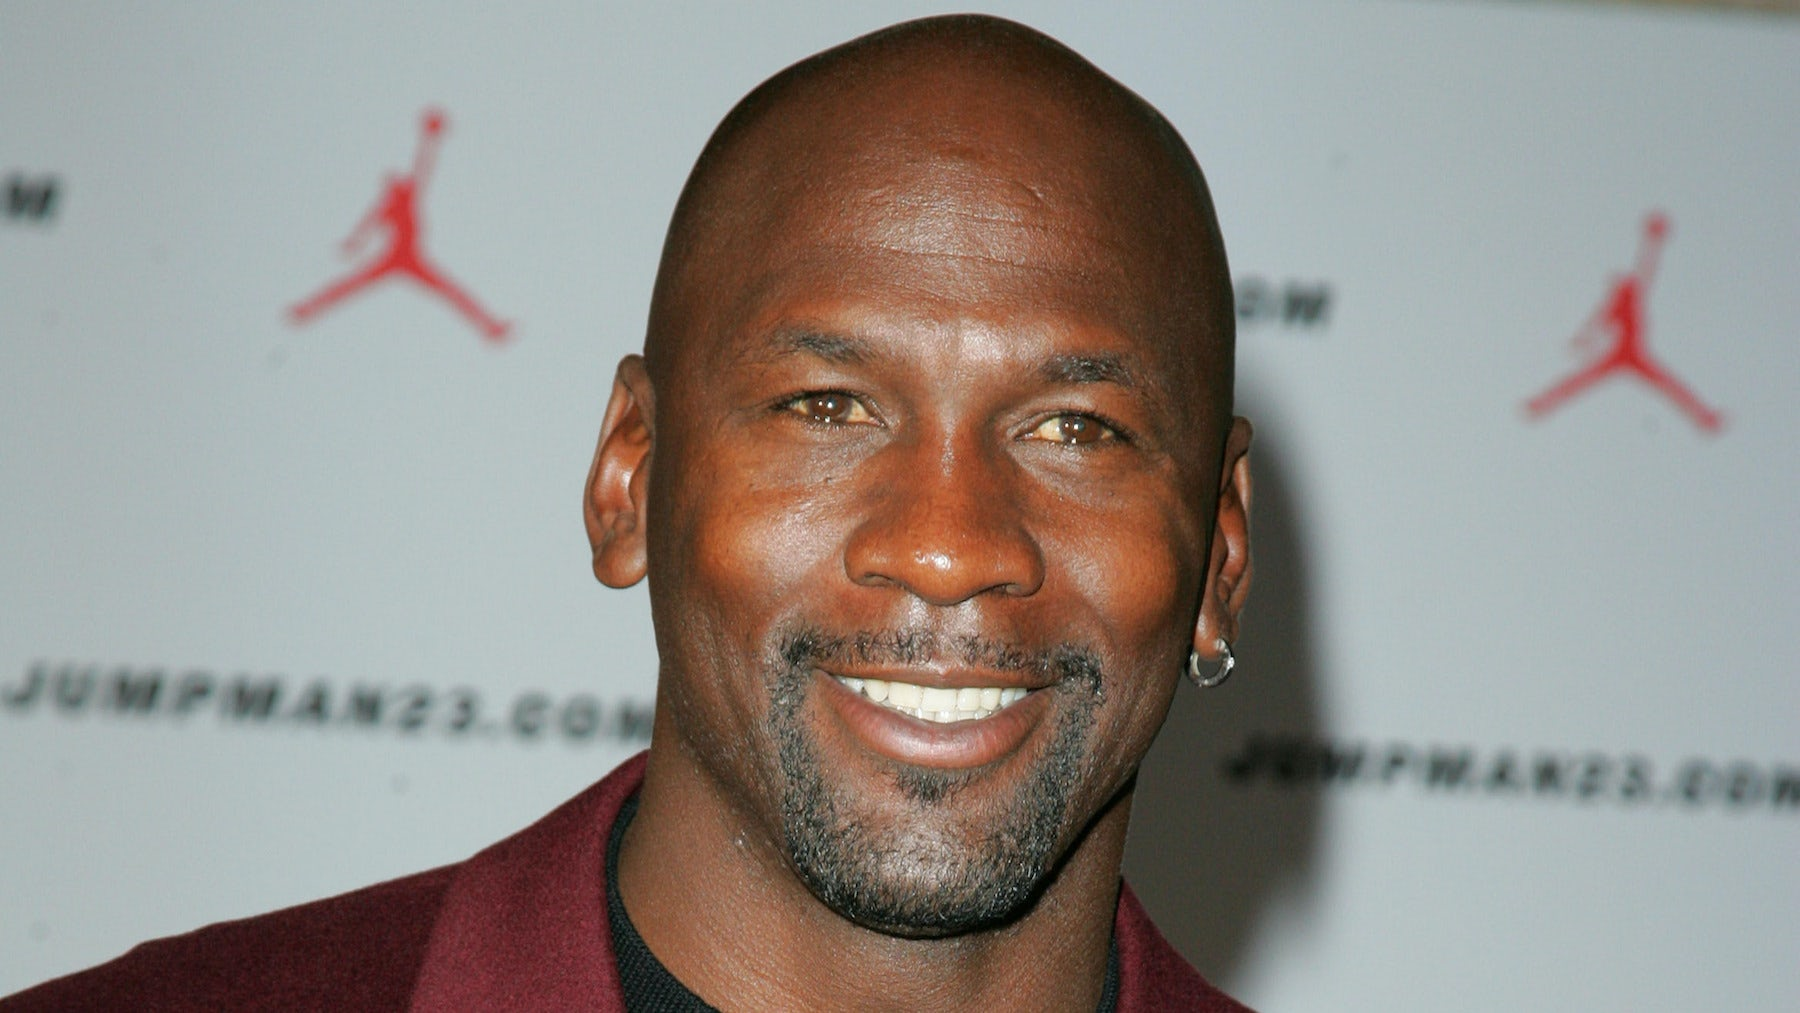 Michael Jordan Donates $100 Million to Racial Equality Causes